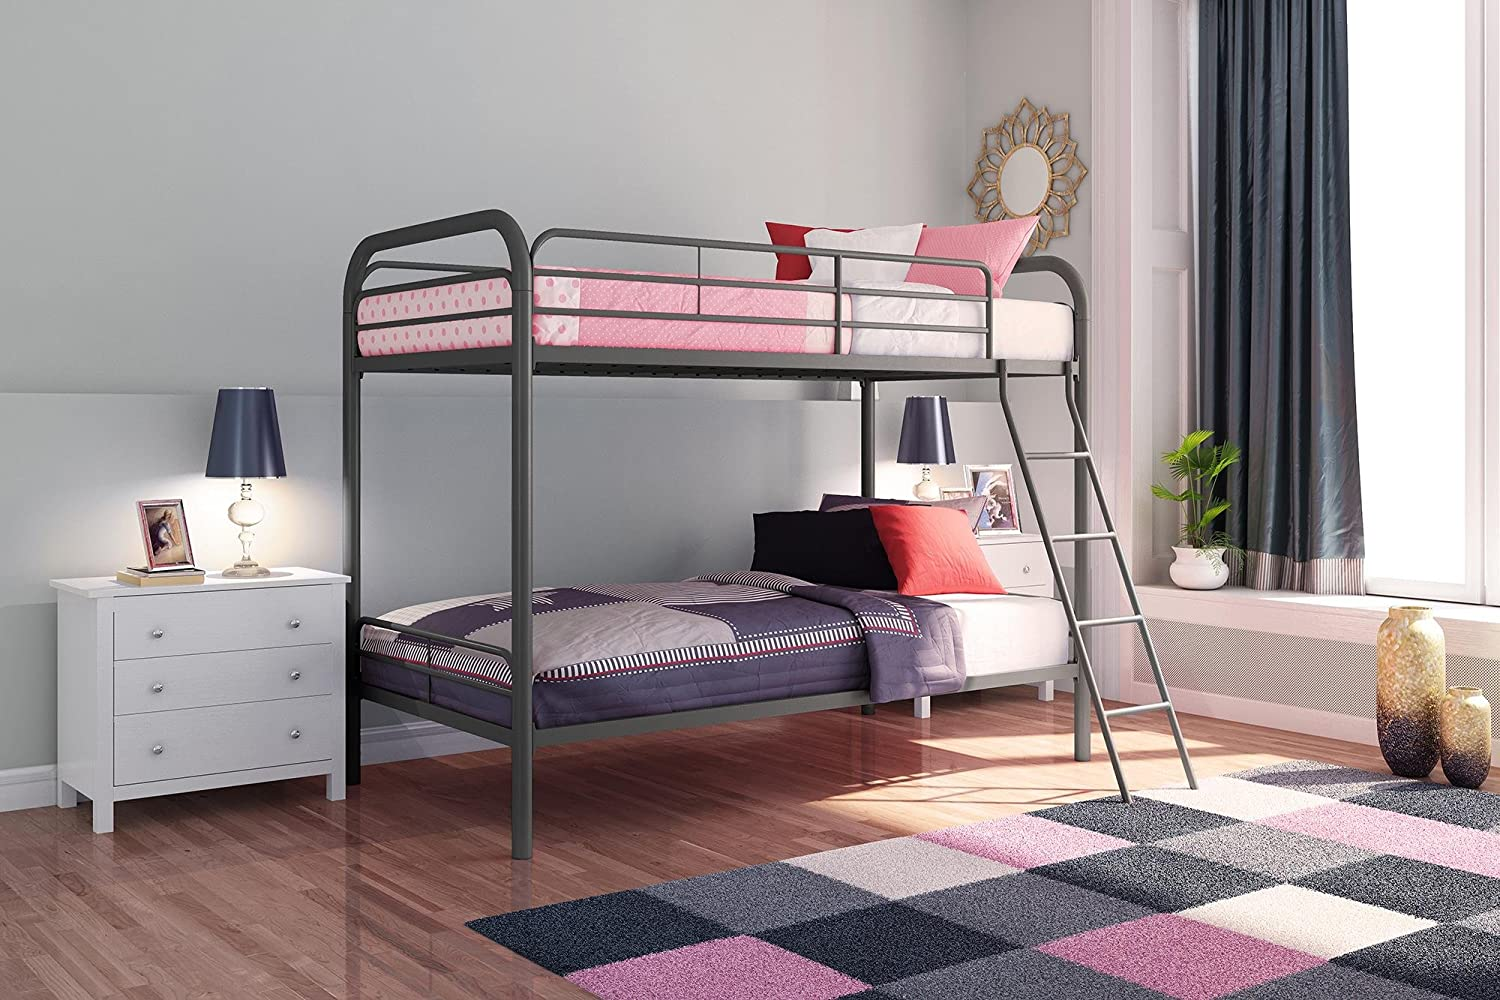 5 Best Kids Bunk Beds under $200 Reviews of 2021 6